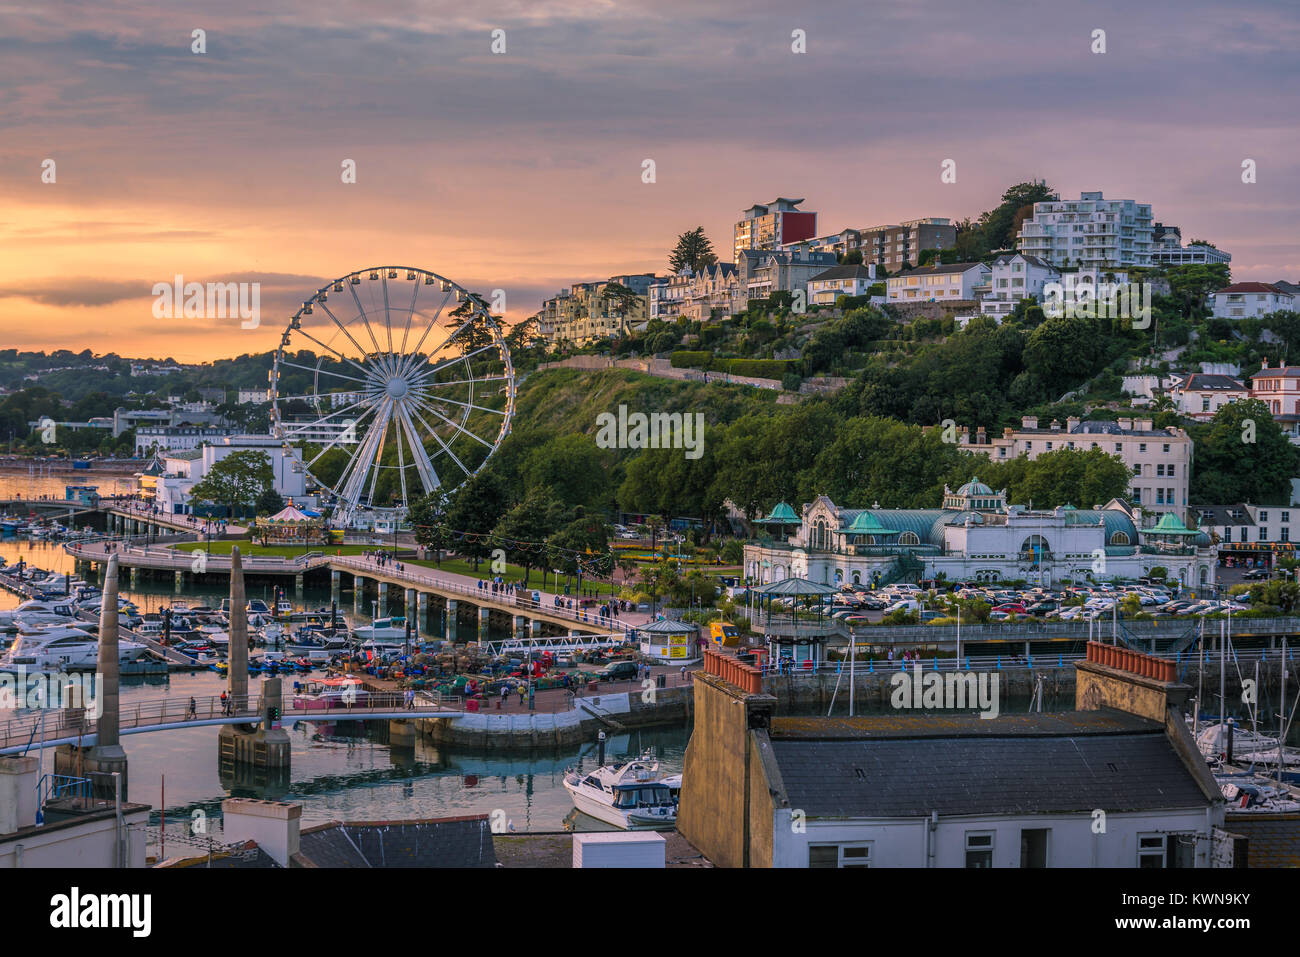 Torquay, Devon, England. August 2017 - Panoramic view of the harbor of the popular seaside resort town during a - Stock Image